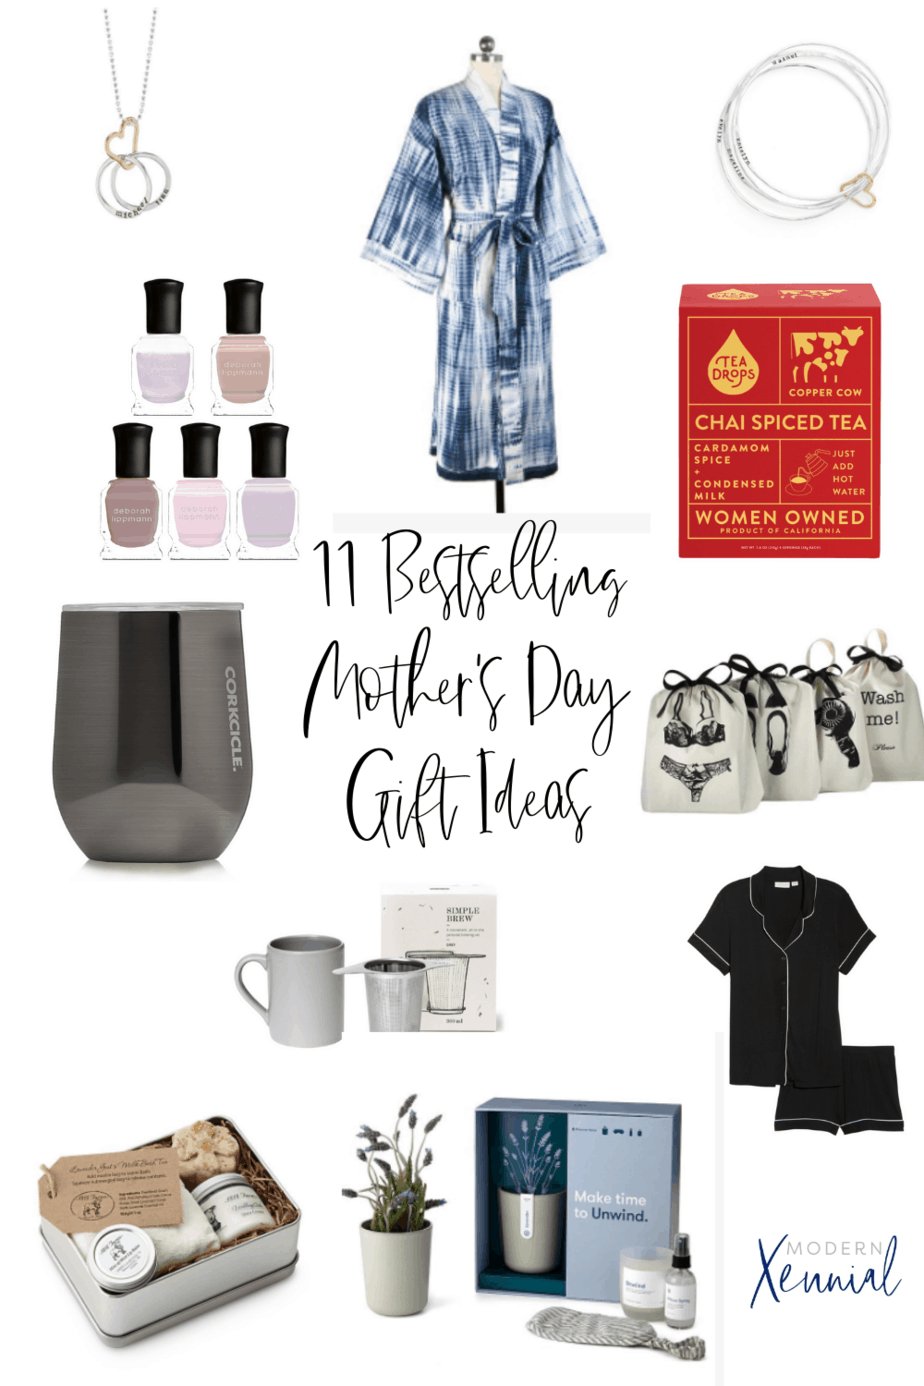 Bestselling Mother's Day Gift Ideas